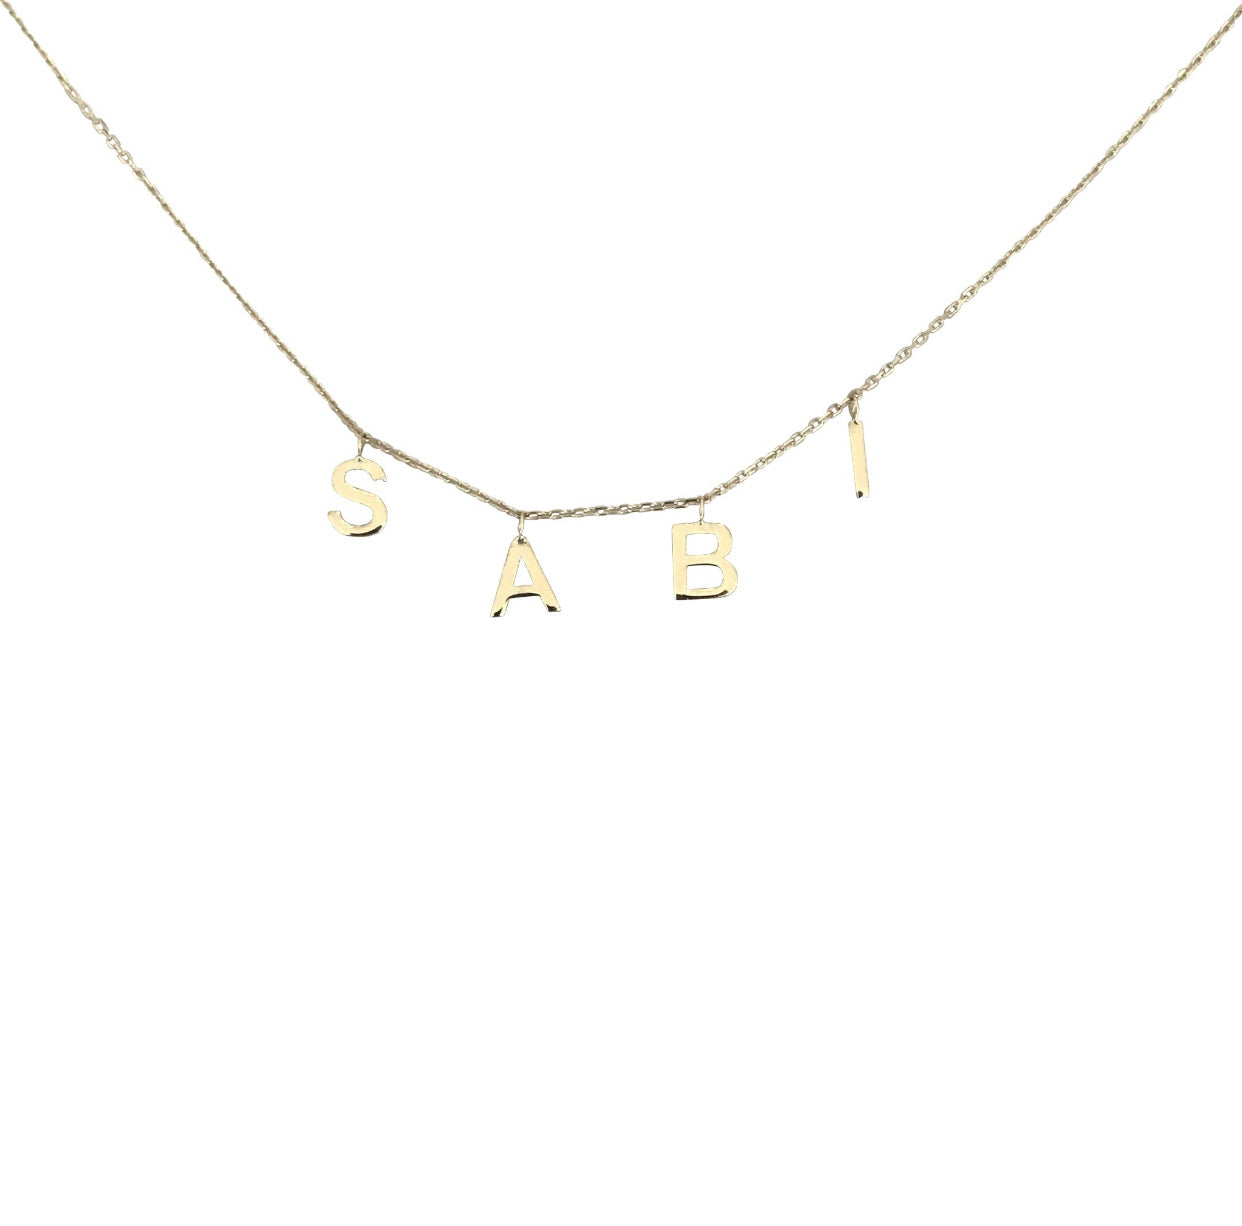 Initial letter necklace hanging 925 Sterling Silver